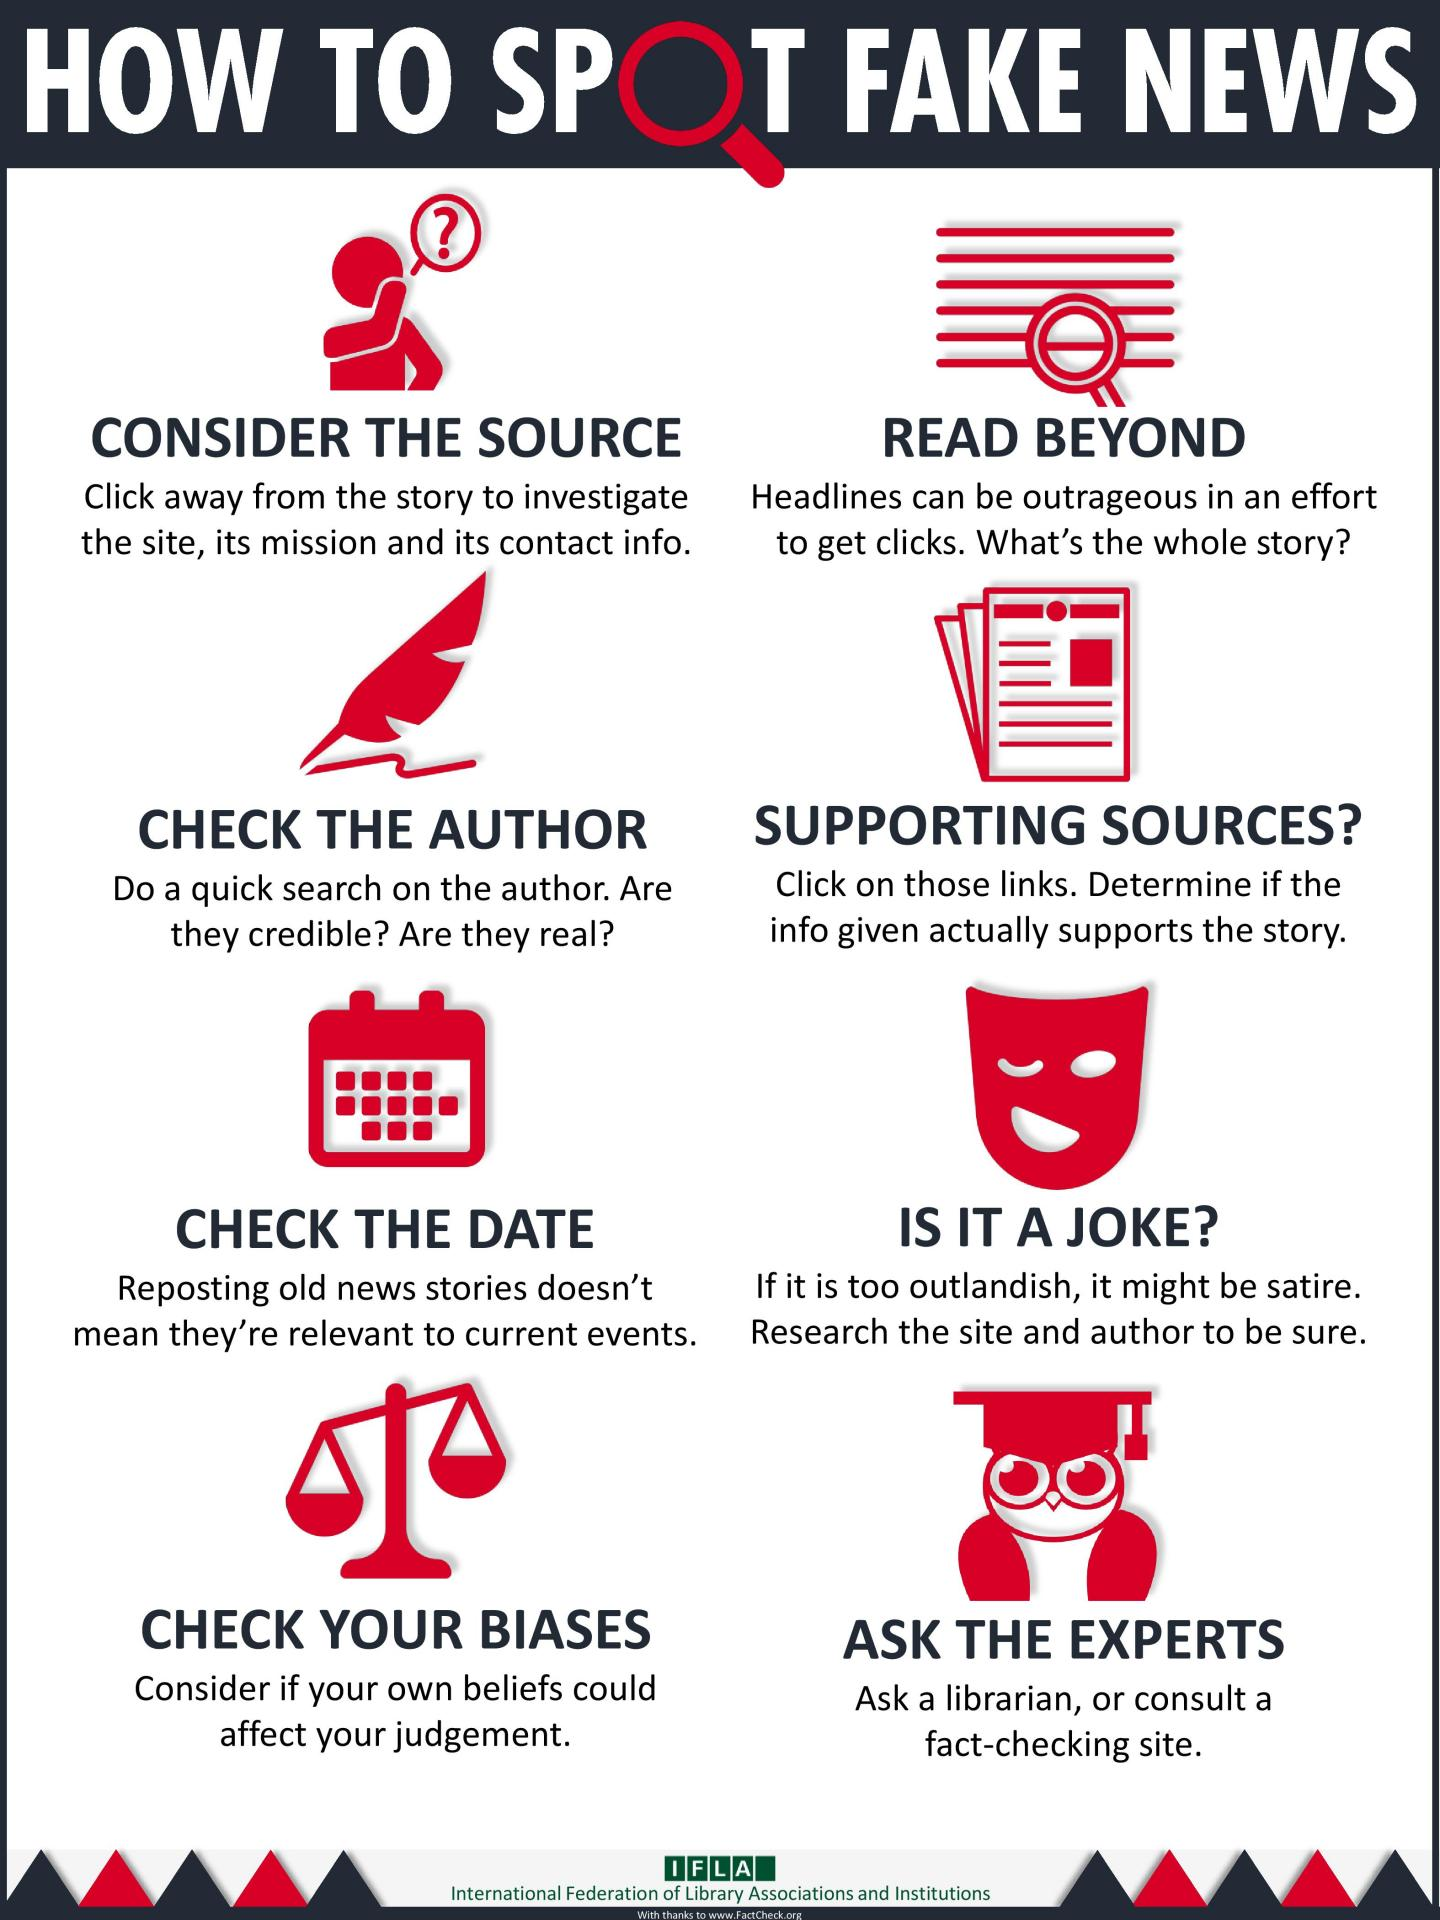 how to spot fake news: consider the source, check the author, date, your biases, read beyond, supporting sources?, is it a joke?, ask the experts